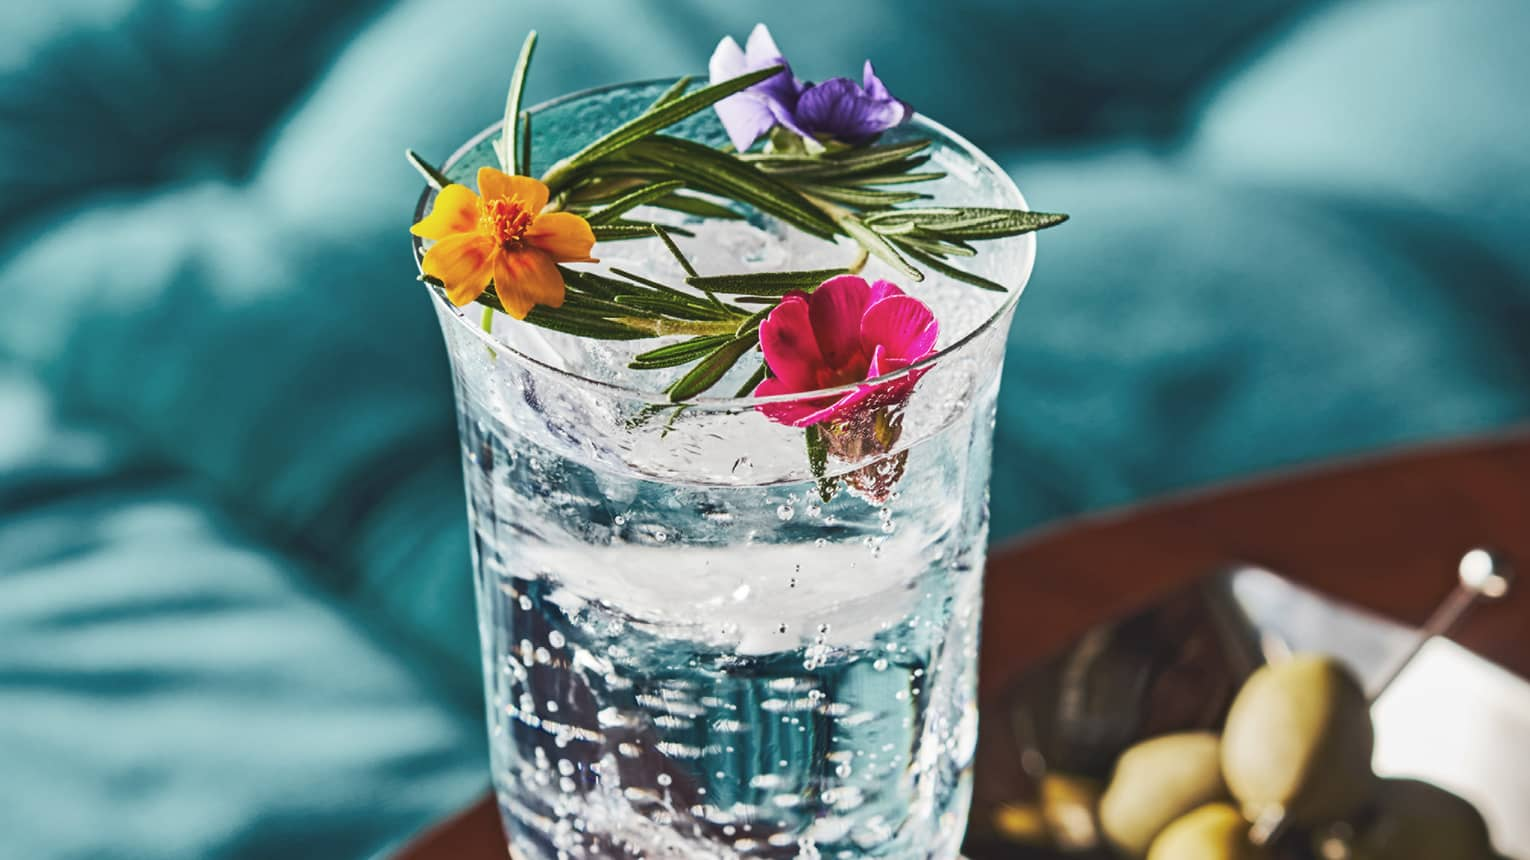 The Ms. Frida, made with Bianca Tequila, grapefruit, lavender cordial, bergamot and tonic